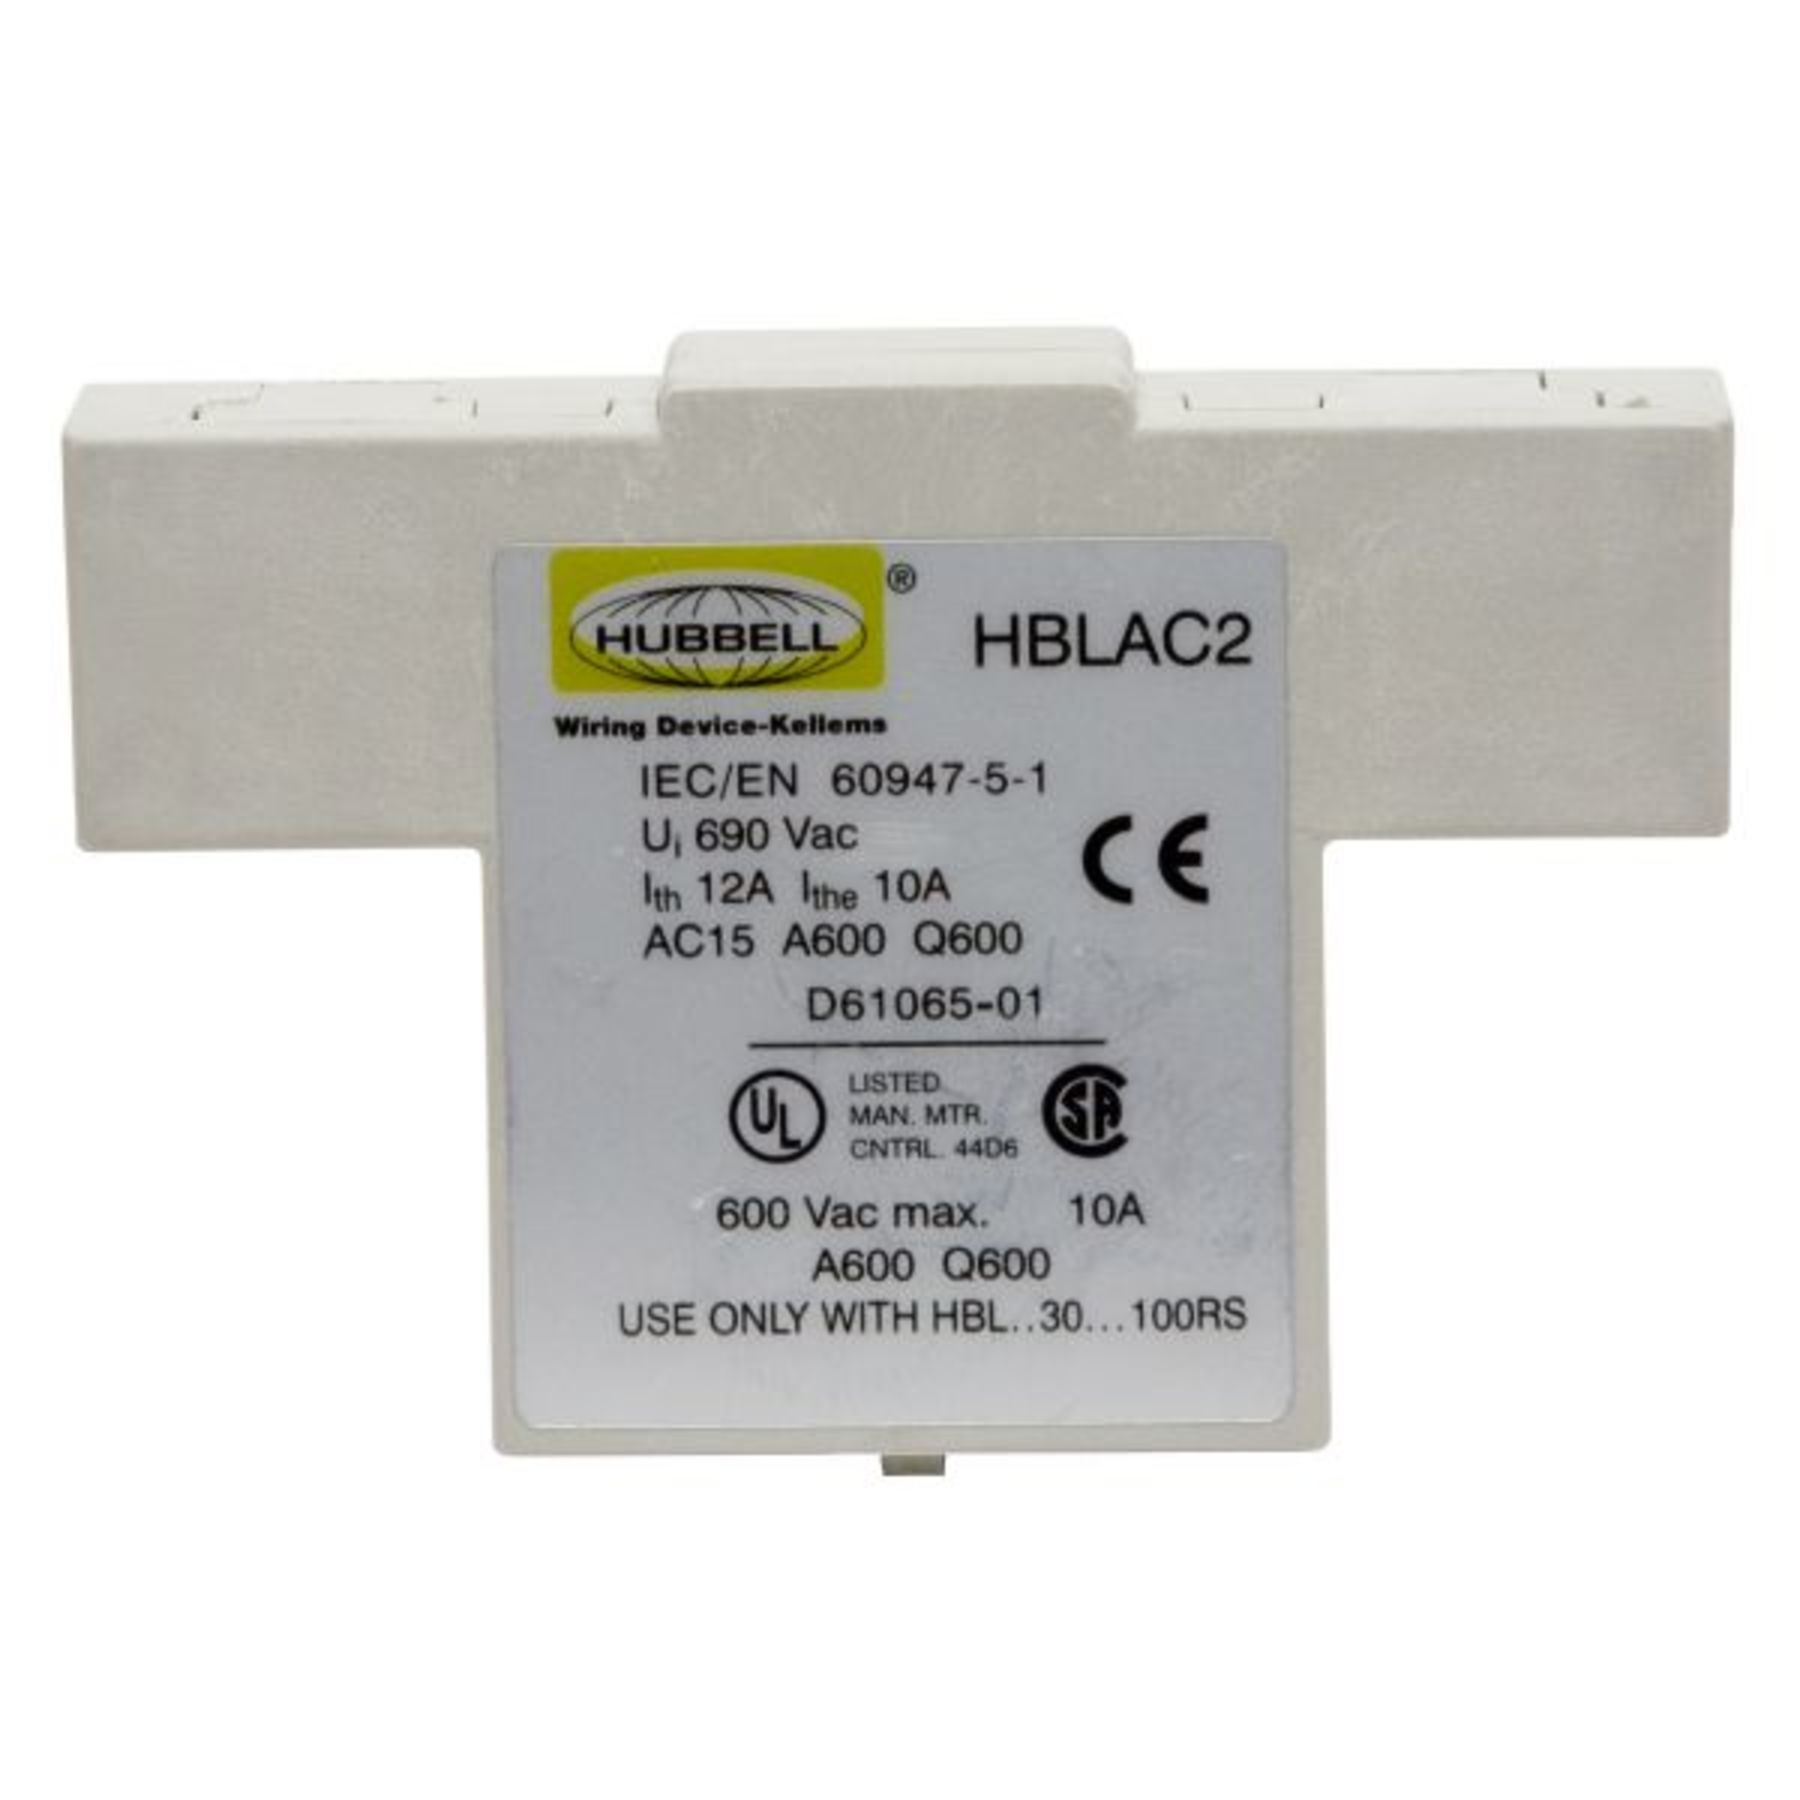 HUBBELL WIRING DEVICE-KELLEMS HBLAC1 Auxiliary Contact,Break After Break